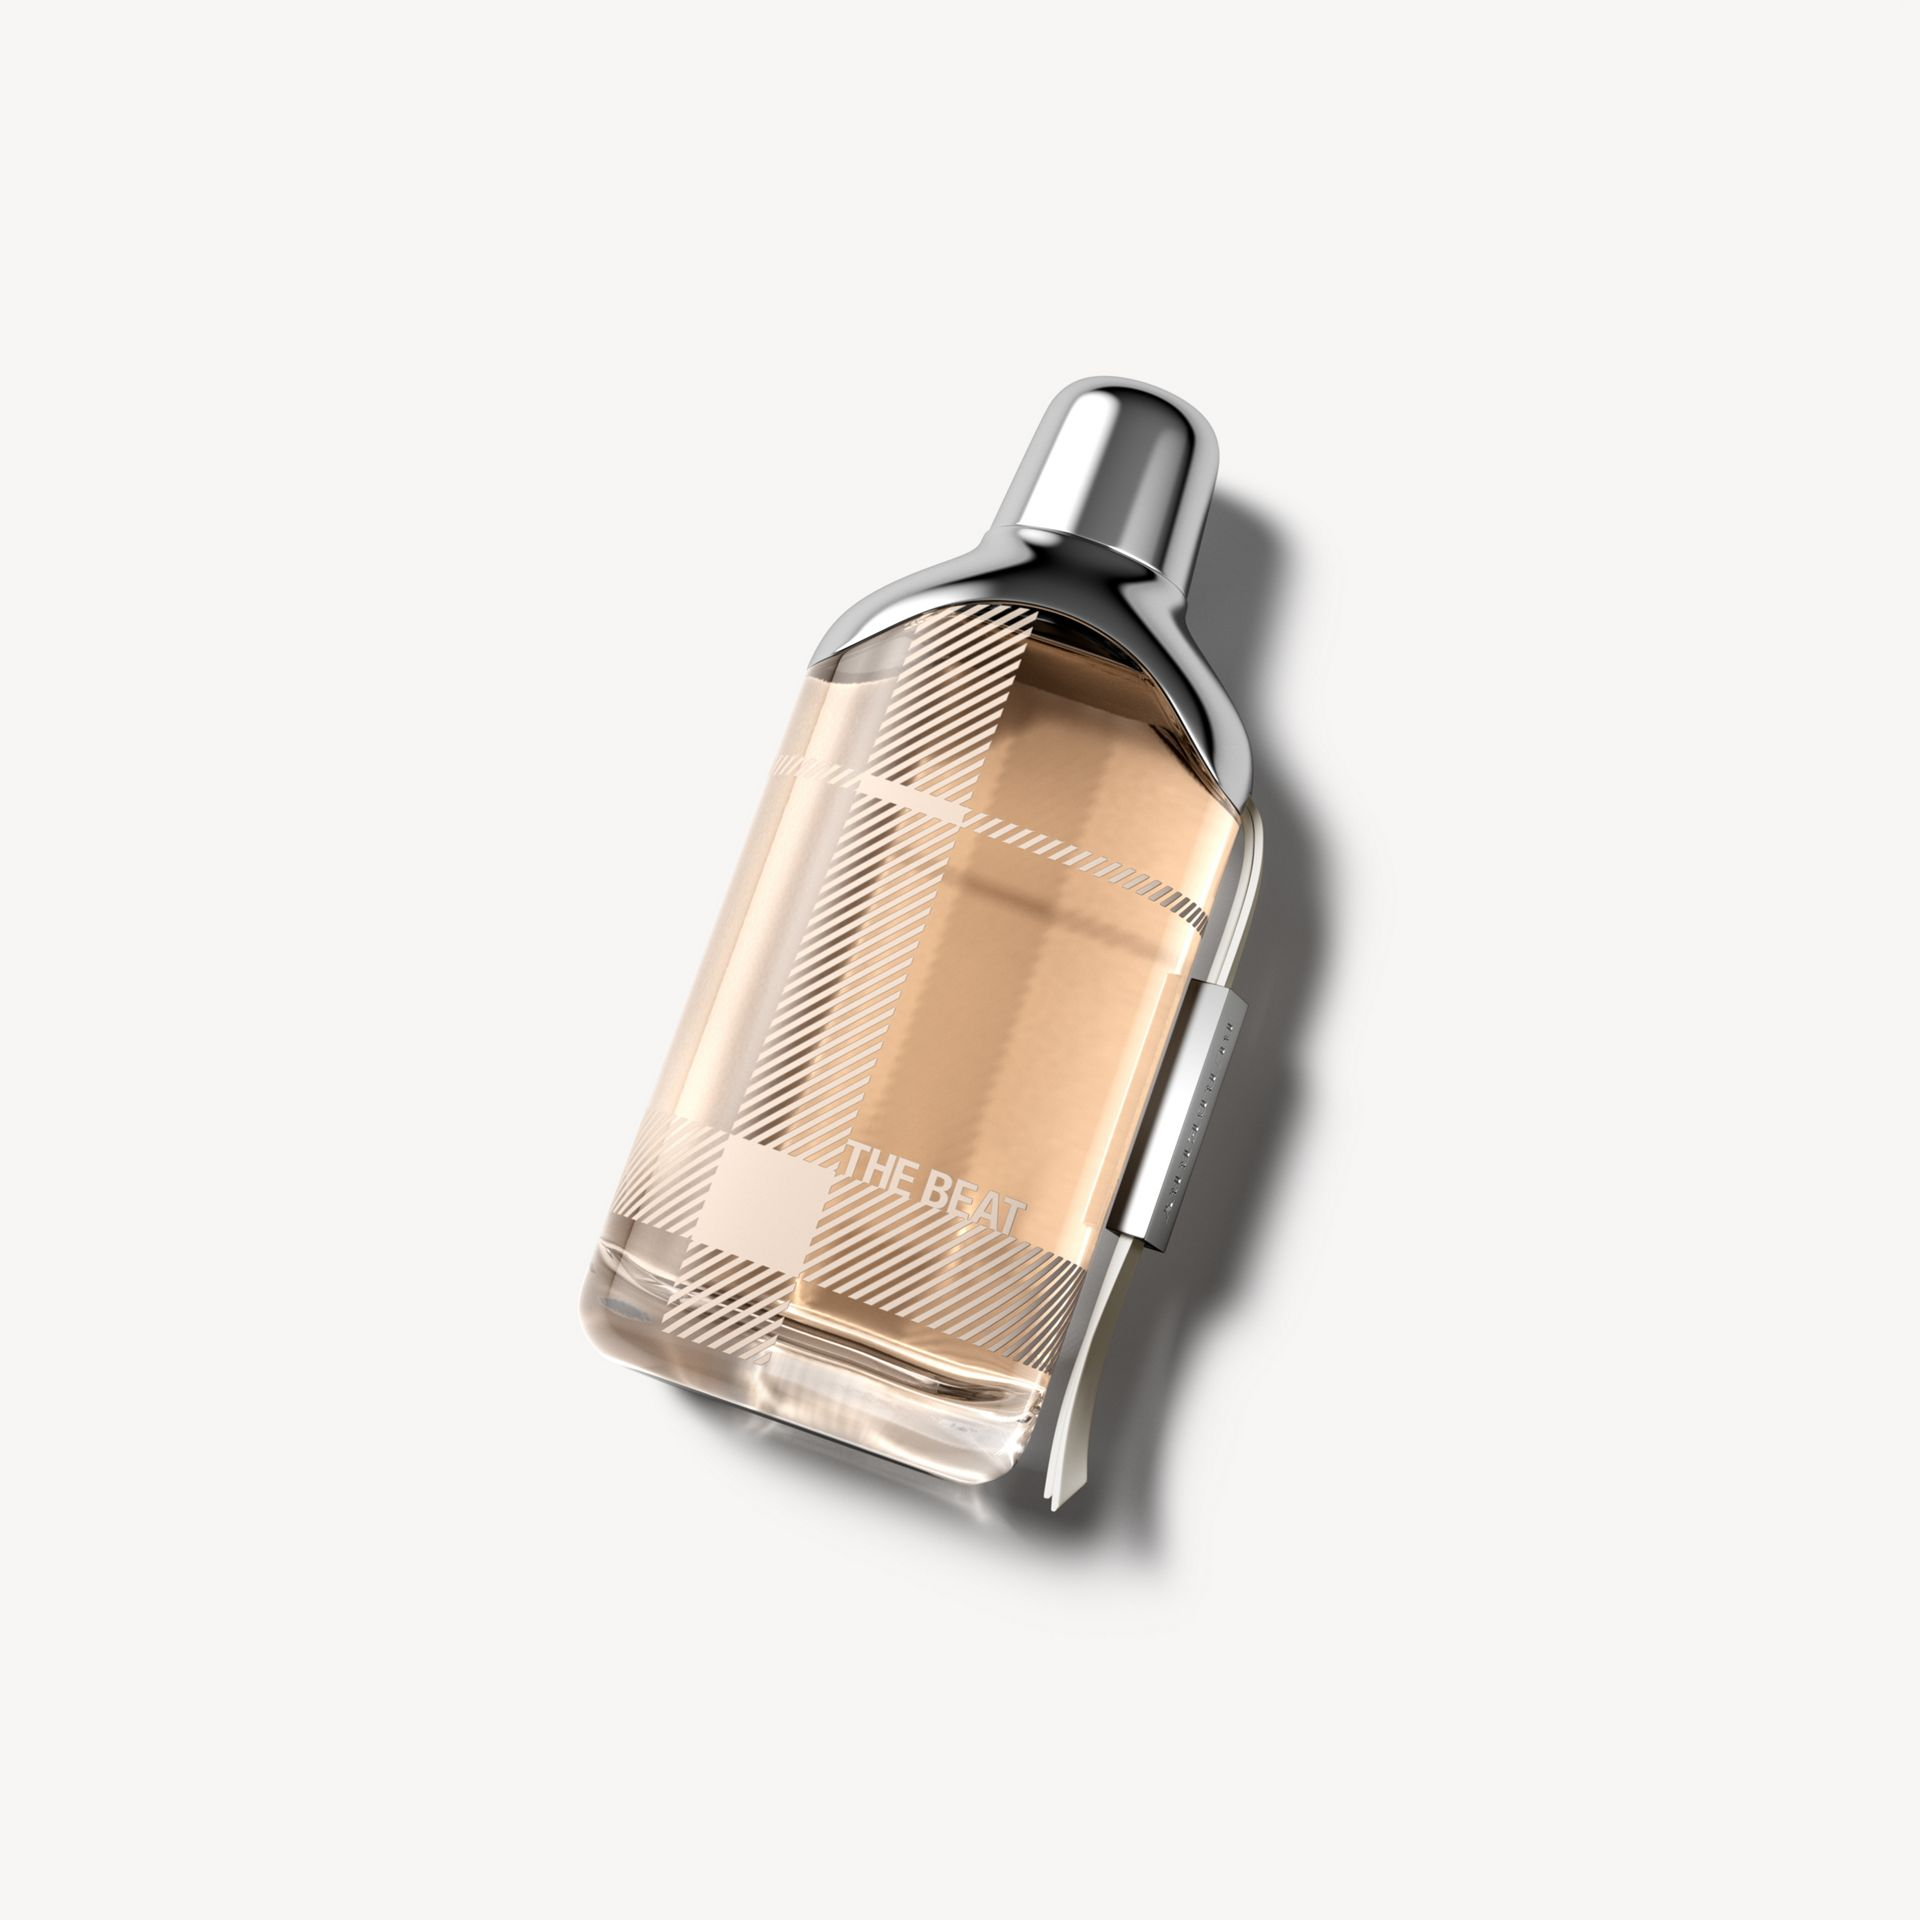 Burberry The Beat Eau de Parfum 75 ml - Donna | Burberry - immagine della galleria 1